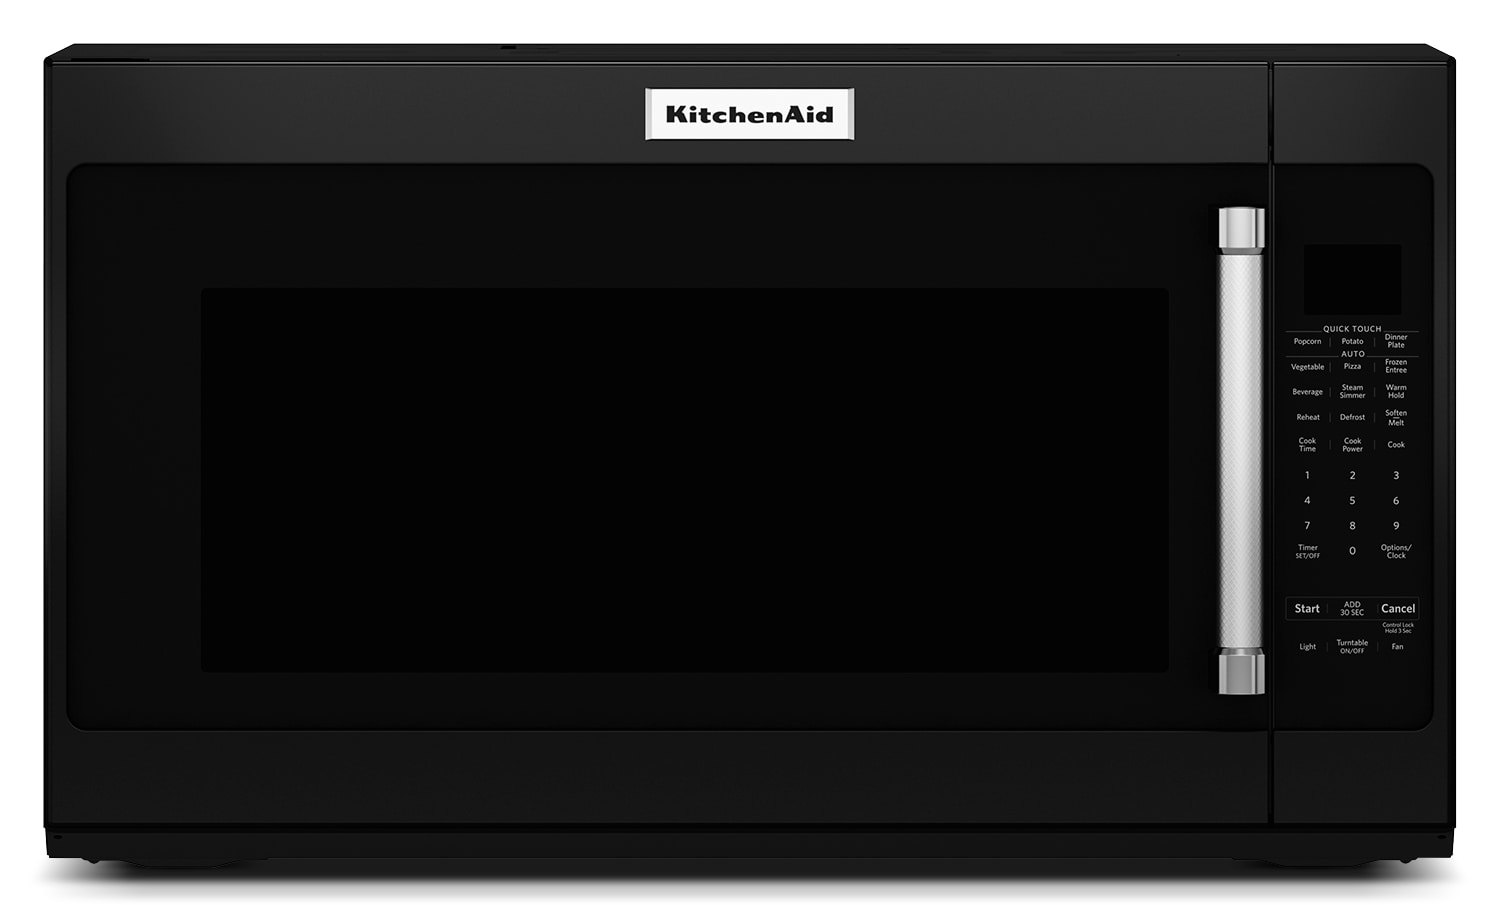 Cooking Products - KitchenAid Black Over-the-Range Microwave (2.0 Cu. Ft.) - YKMHS120EB